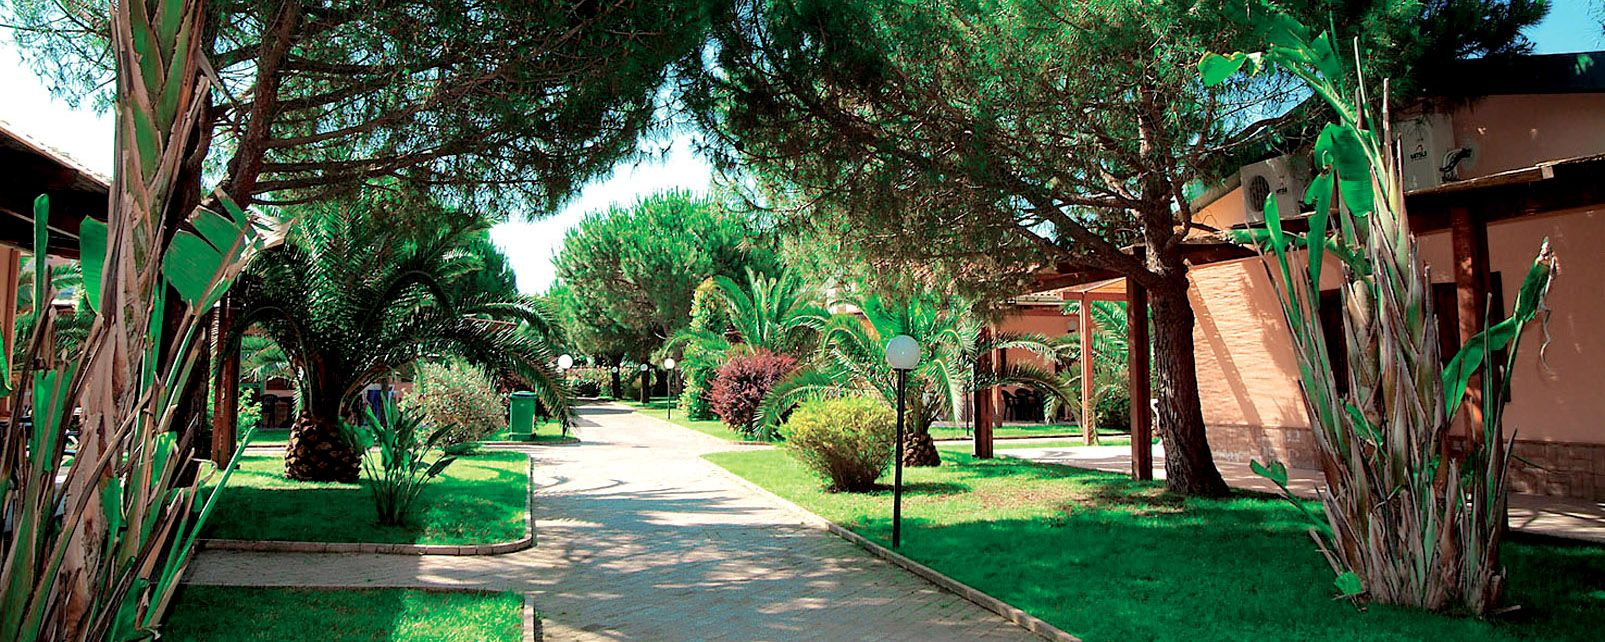 Top Clubs Village Oasis Paestum